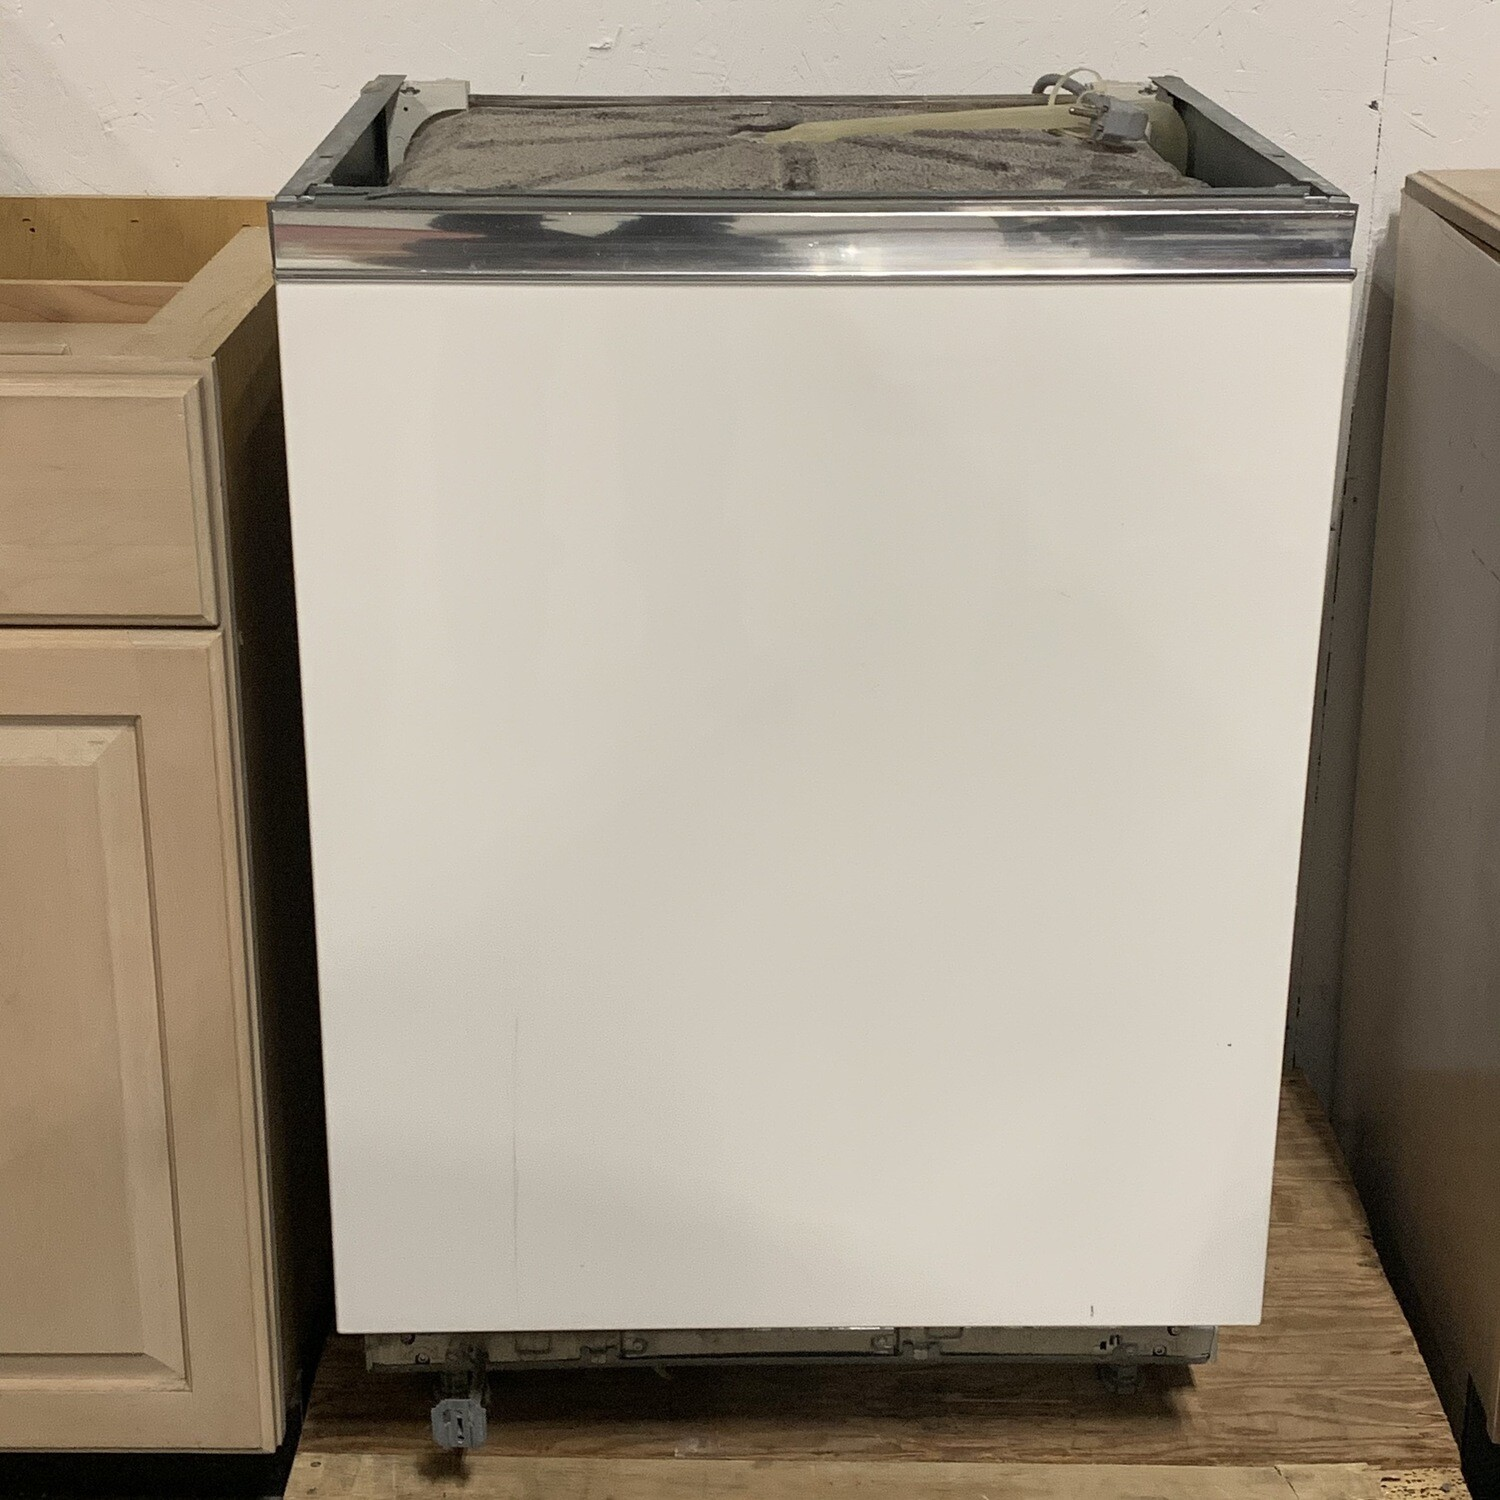 Miele White Dishwasher